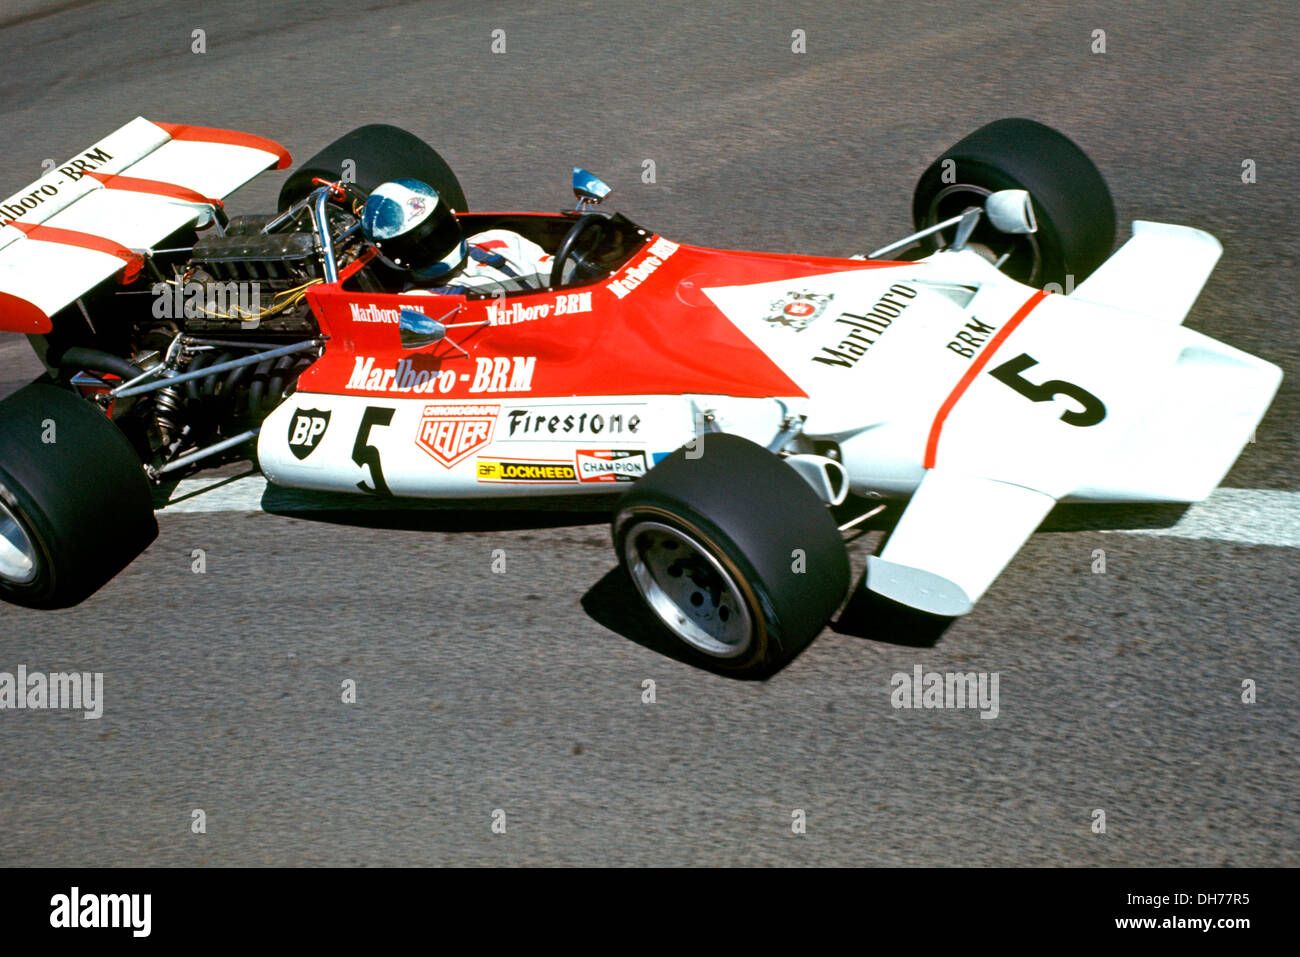 jean pierre beltoise in the brm p160b finishing 15th at the french gp stock photo royalty free. Black Bedroom Furniture Sets. Home Design Ideas